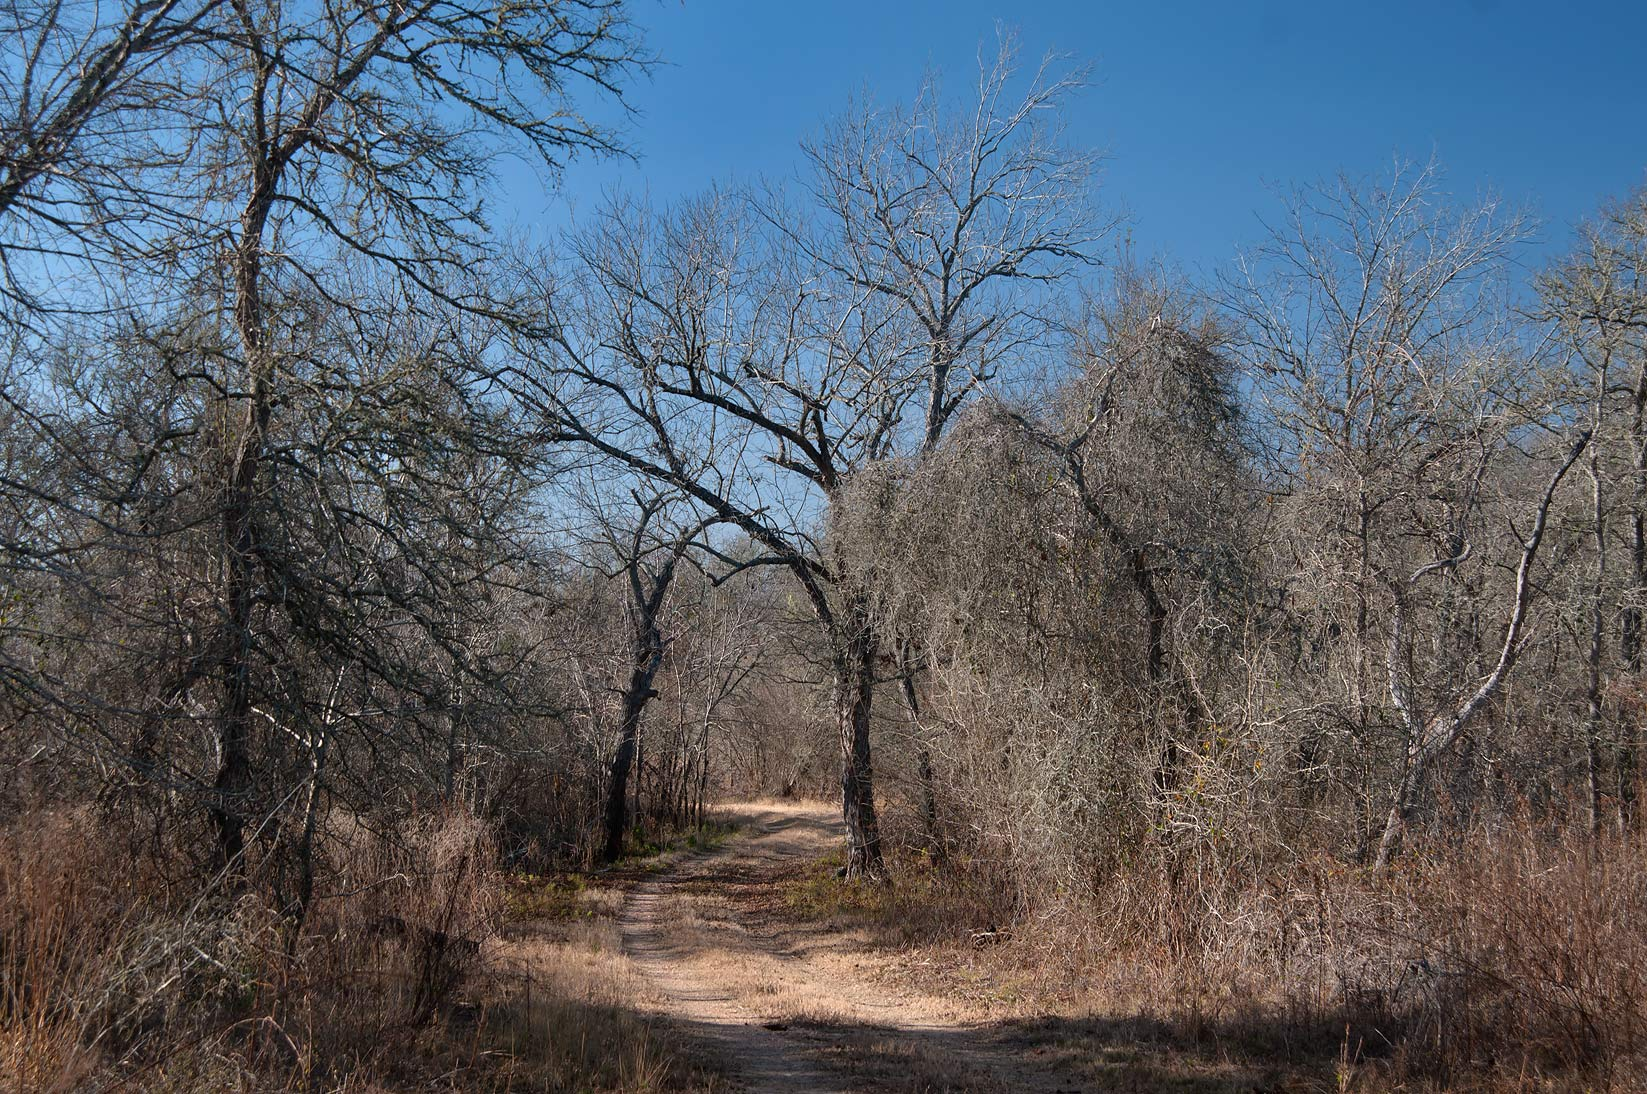 Winter forest in Birch Creek Unit of Somerville Lake State Park. Texas